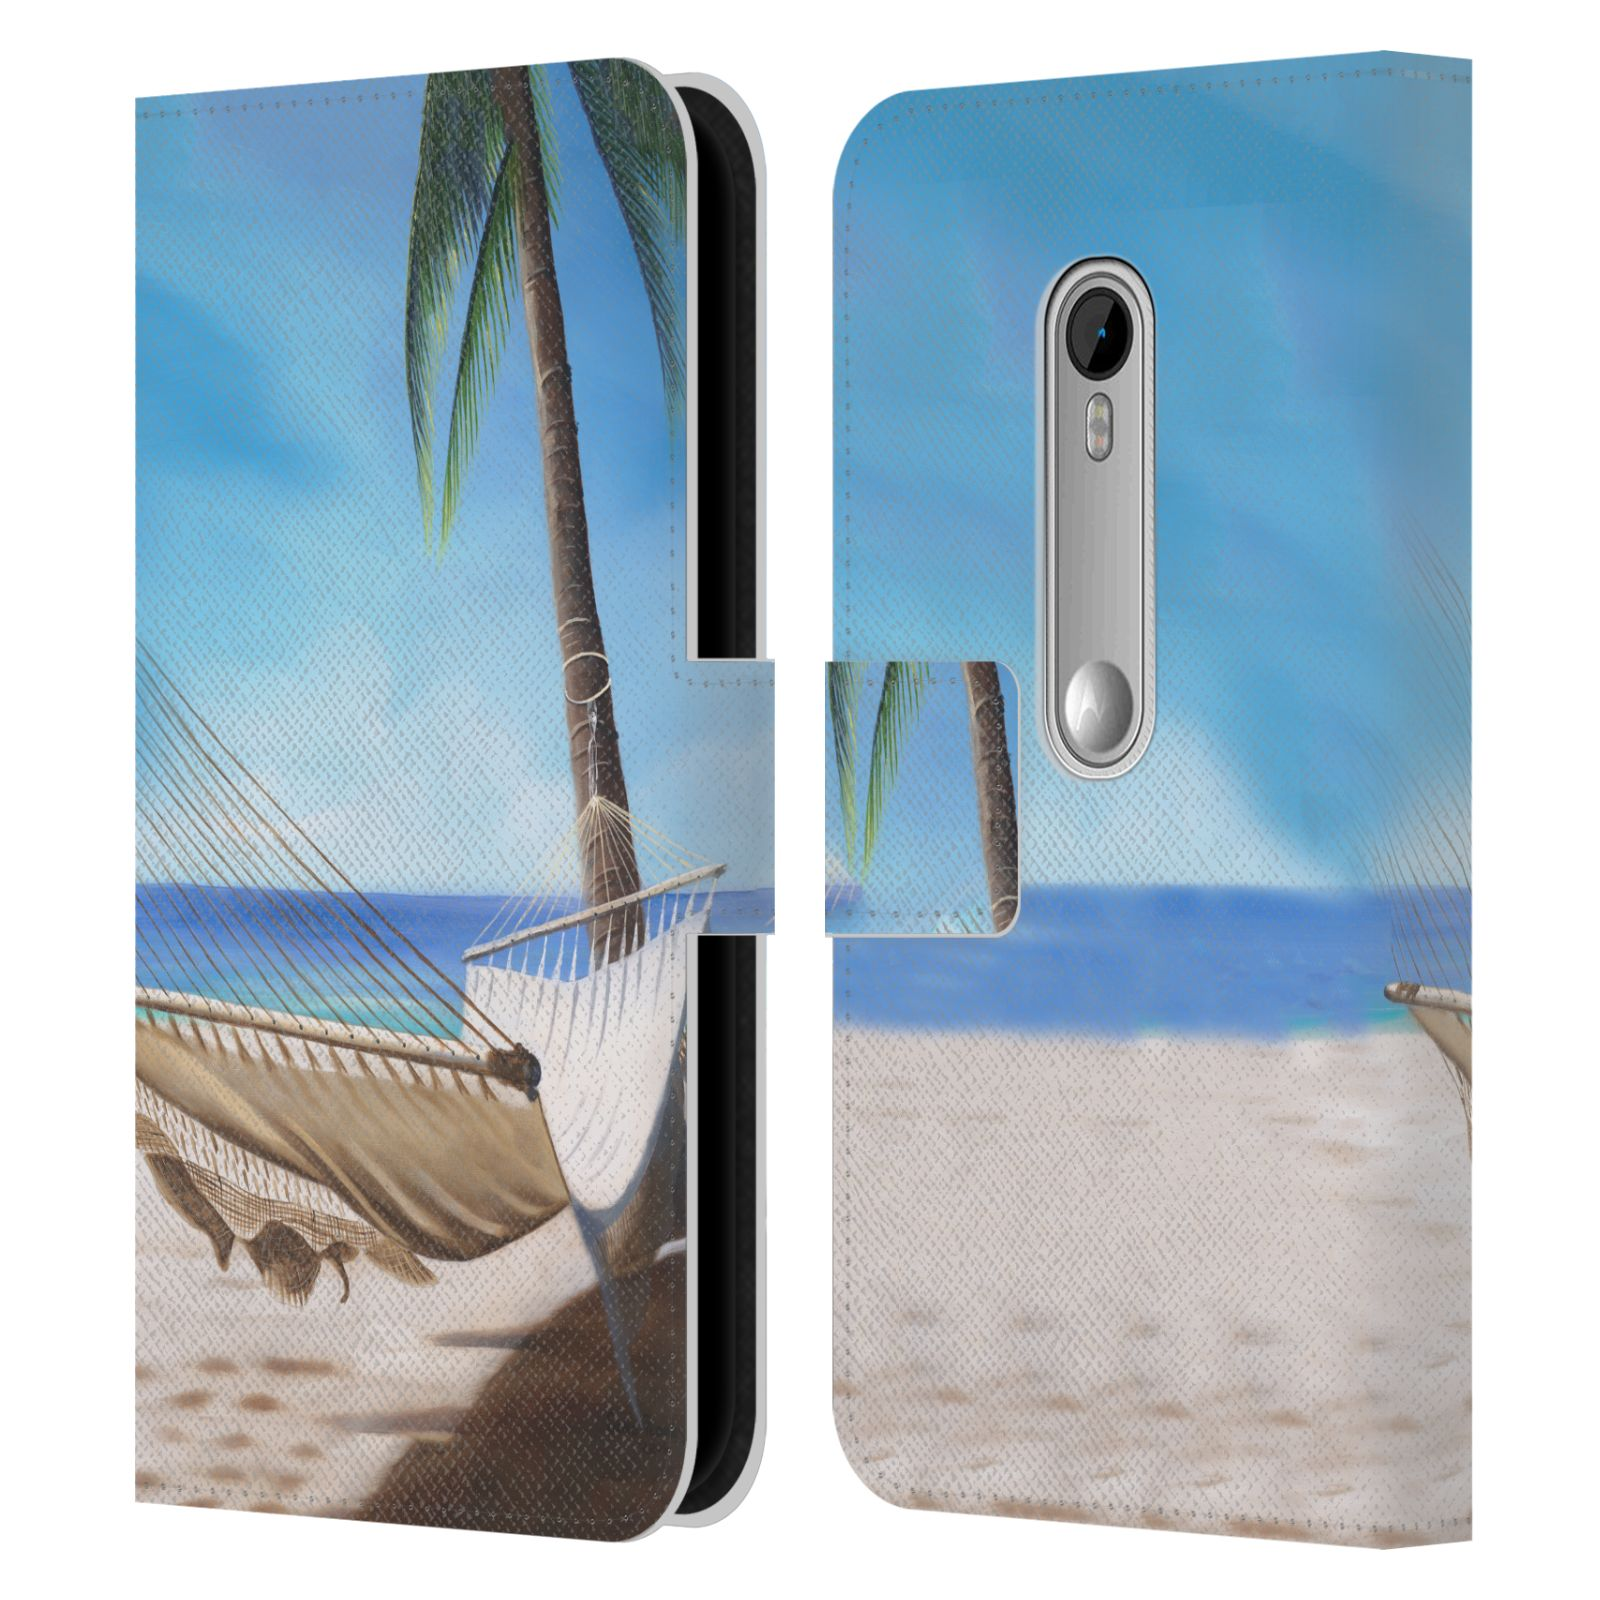 OFFICIAL-GENO-PEOPLES-ART-HOLIDAY-LEATHER-BOOK-WALLET-CASE-FOR-MOTOROLA-PHONES